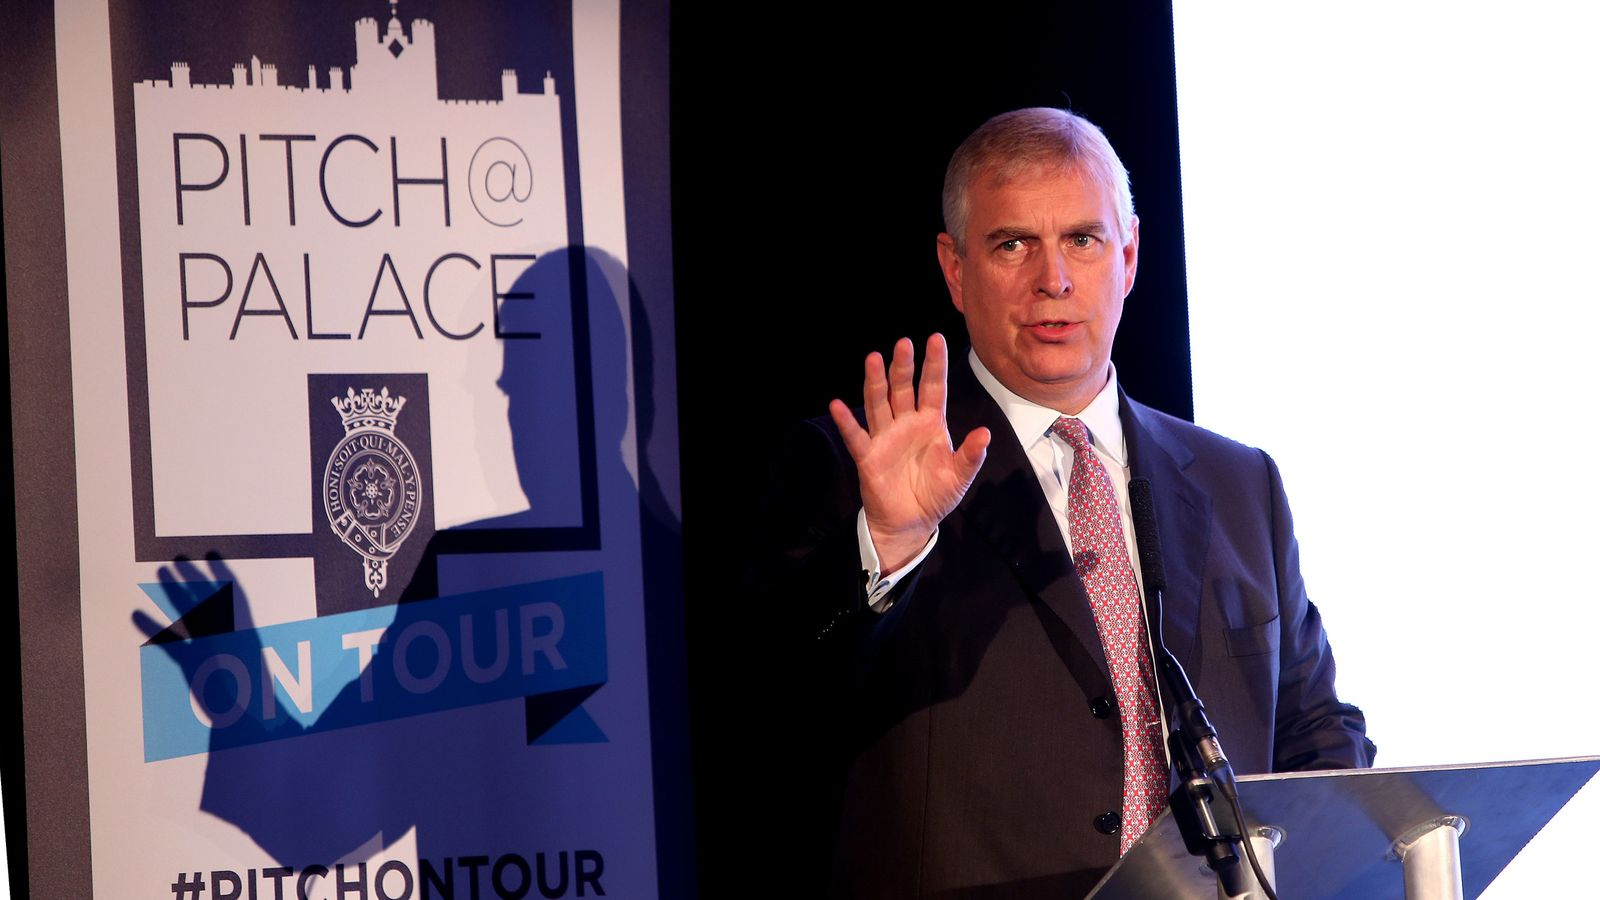 Handful of directors quit Prince Andrew's Pitch@Palace project - EpicNews